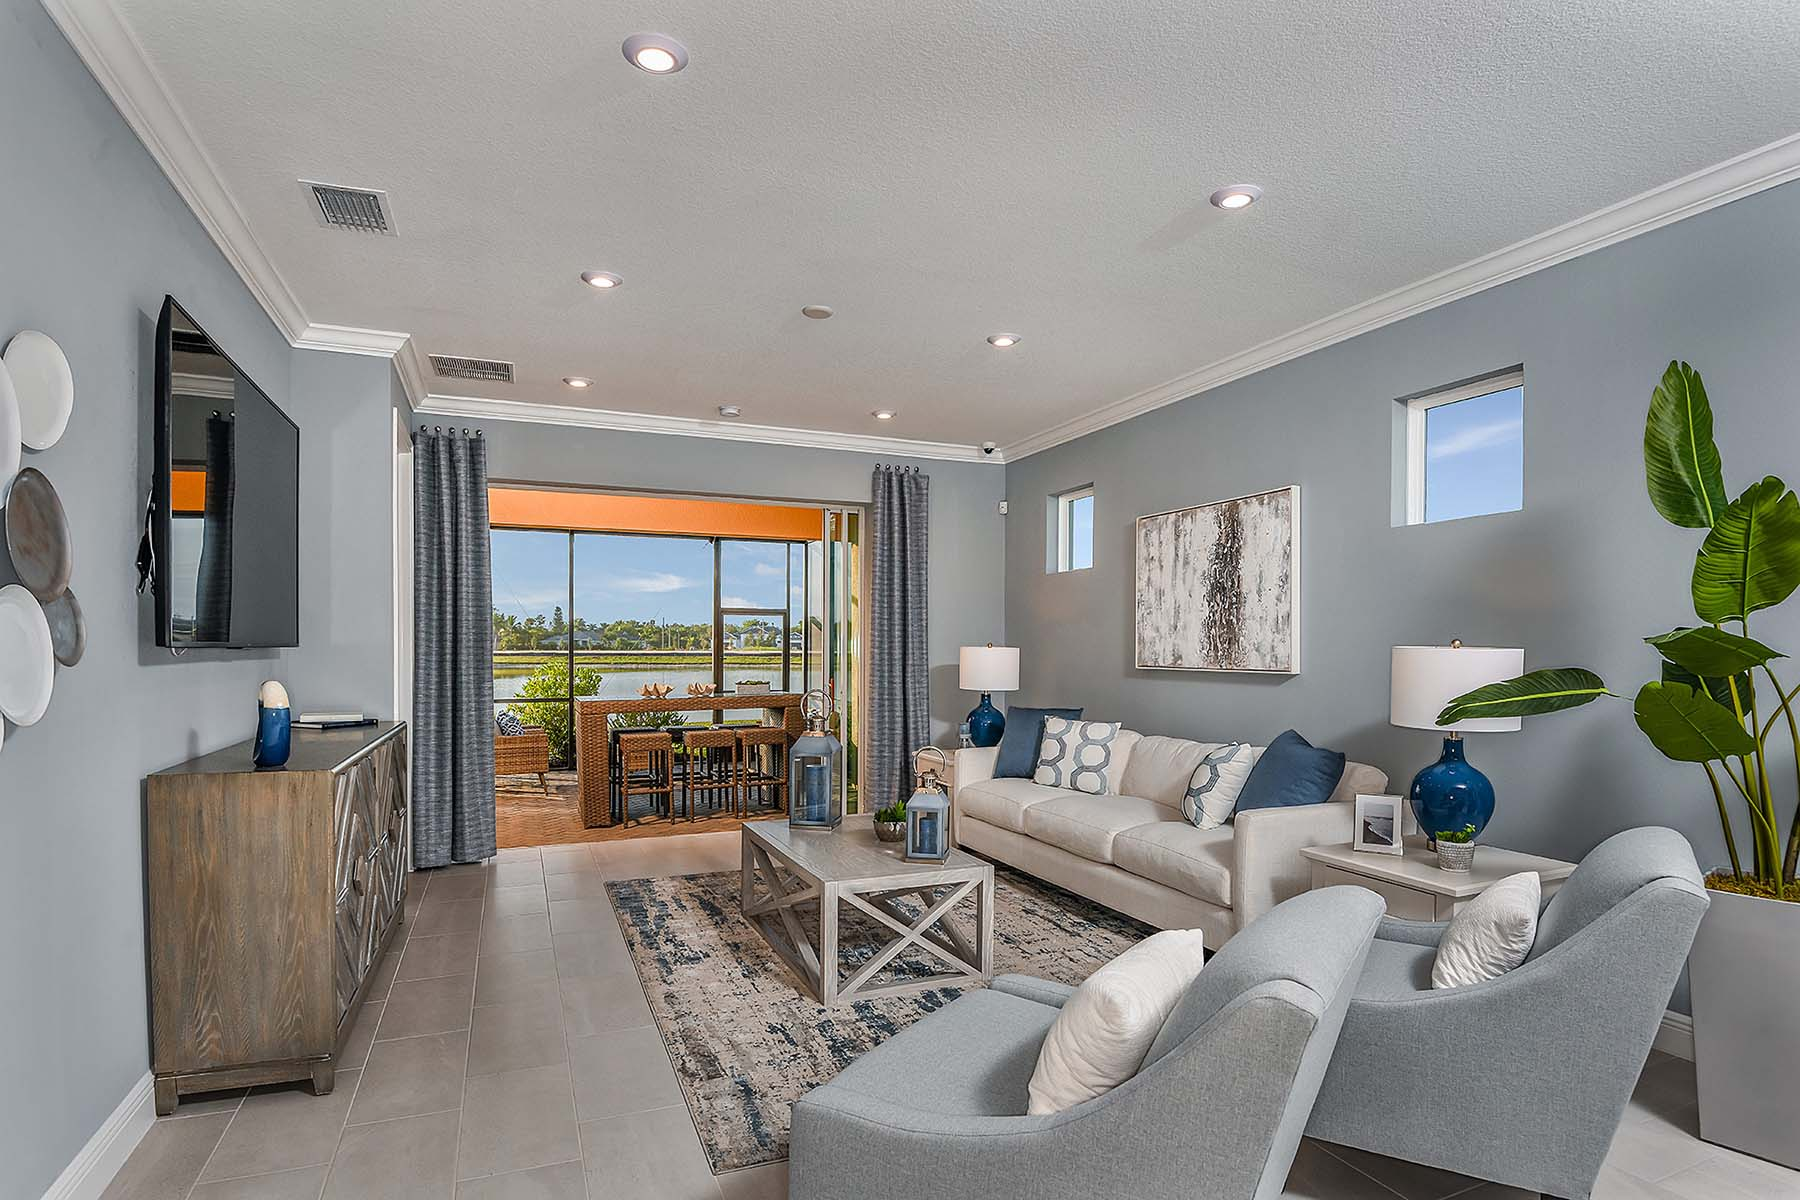 Oceana Plan Greatroom at Bonavie Cove in Fort Myers Florida by Mattamy Homes